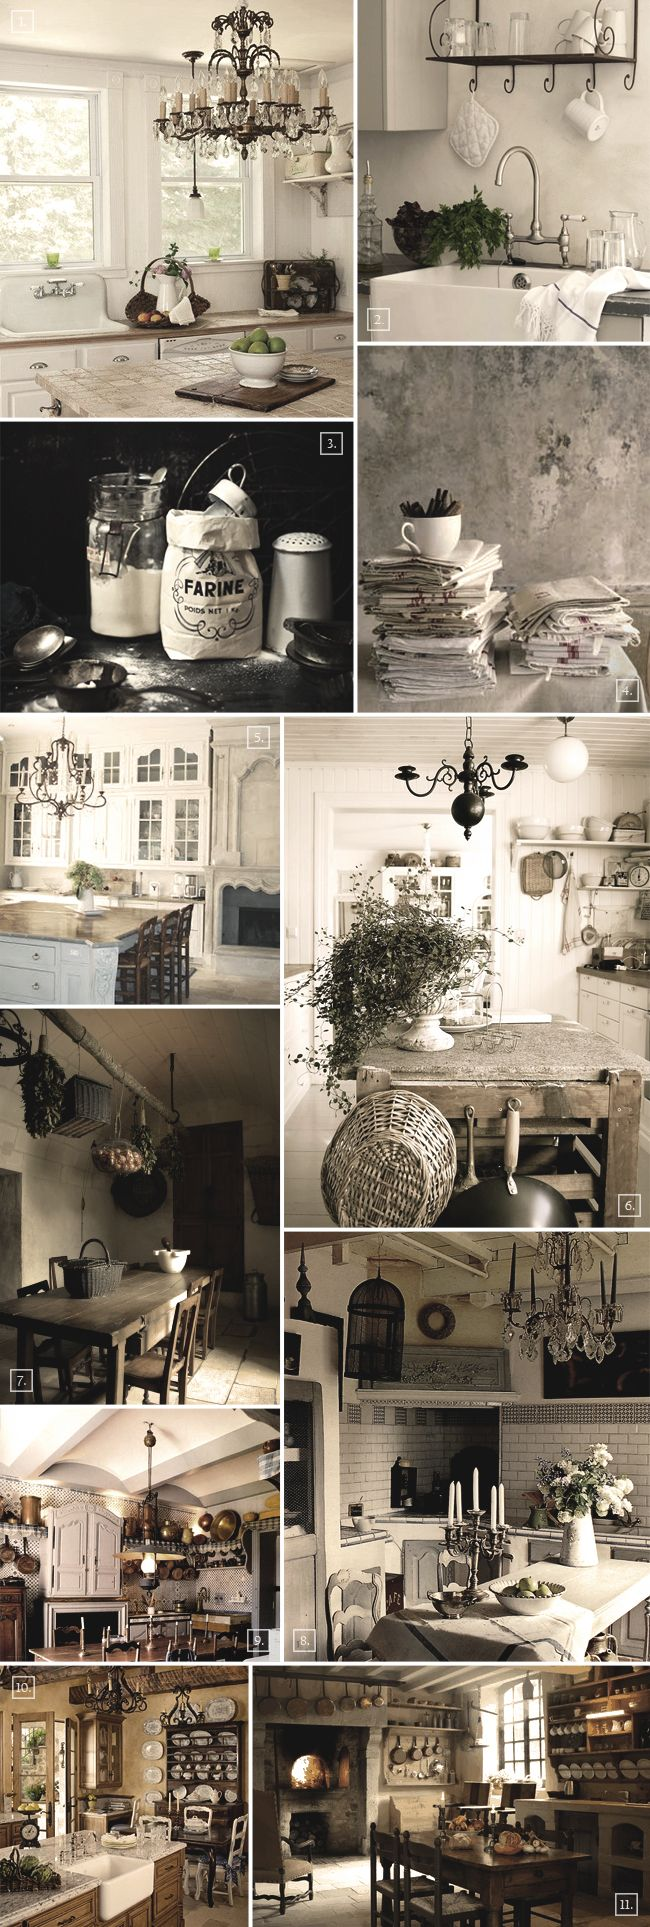 The mood board above includes pictures of French country kitchen designs along with more modern French kitchen decor styles. Here are just some quick pointers and ideas when designing a kitchen around this style: These kitchens are quite bright places – you won't see black or dark brown cabinets or colored ones. White walls are […]